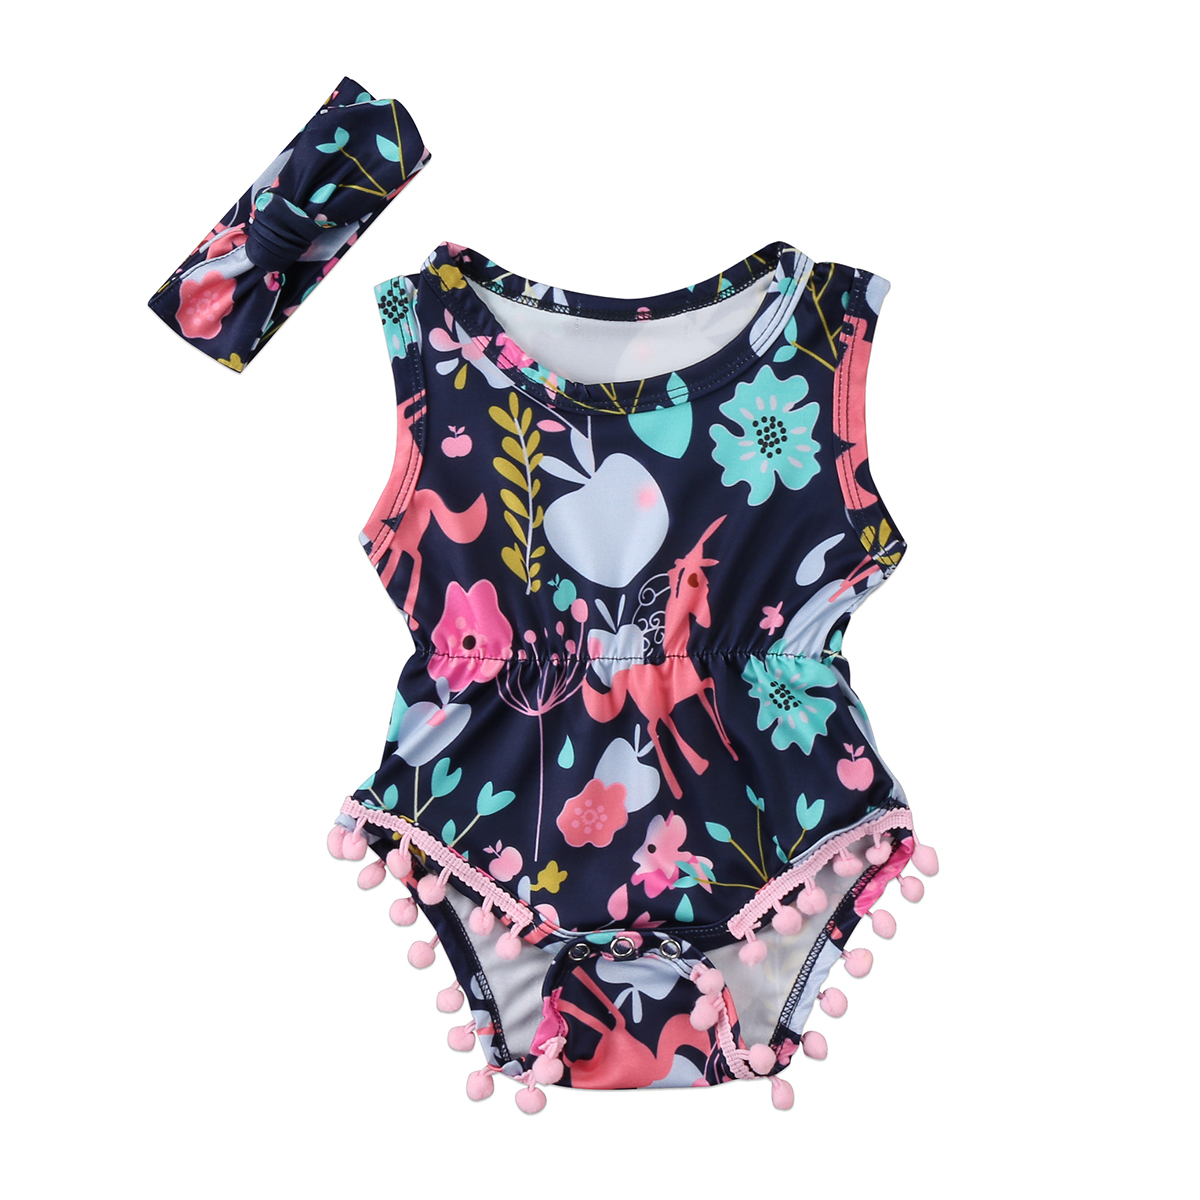 Flower Girls Romper Newborn Baby Girls Floral Sleeveless Romper Jumpsuit Baby Outfit Clothes Sunsuits0-2T